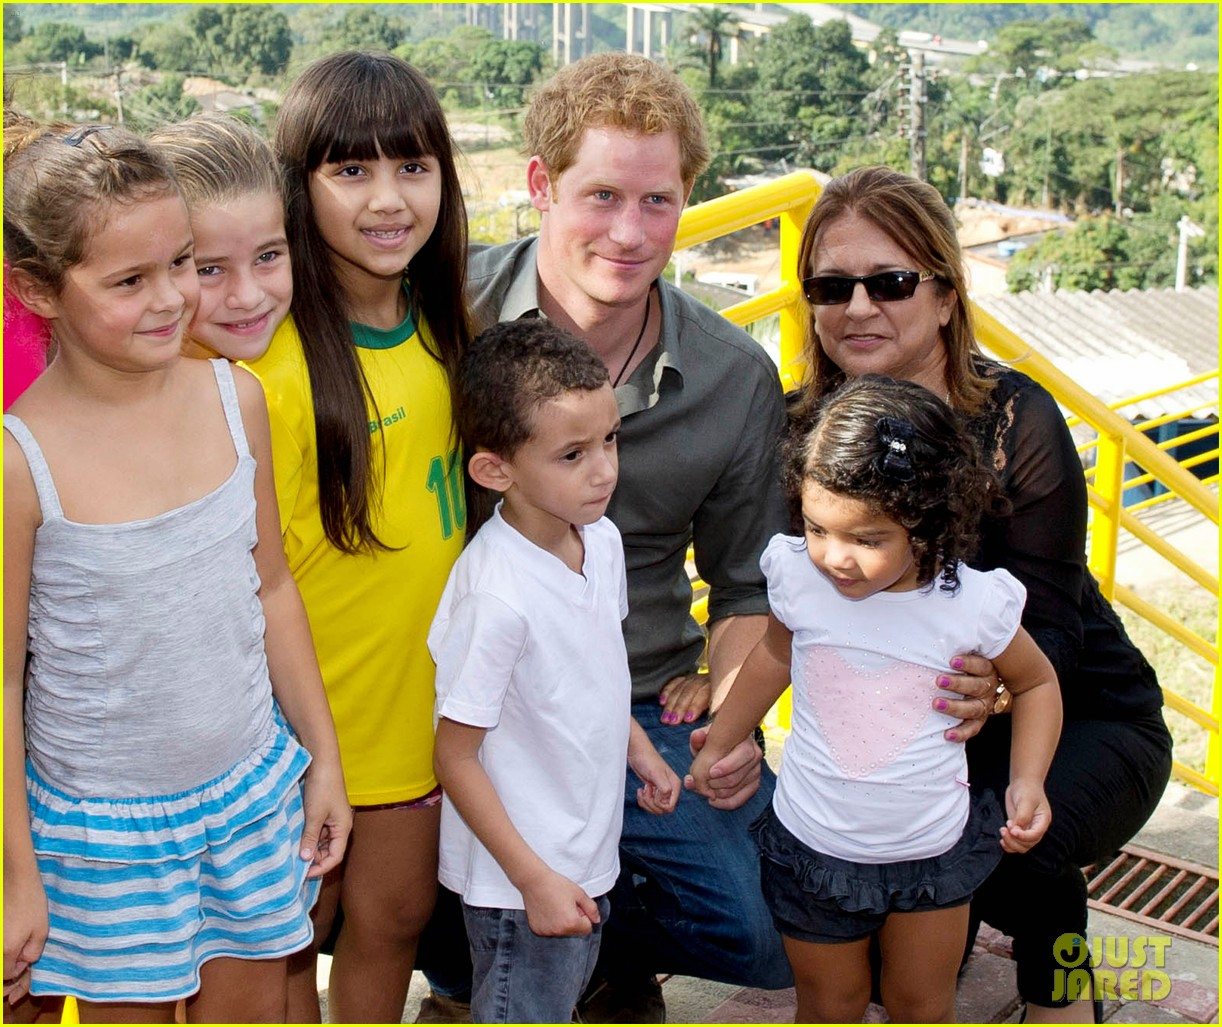 prince harry becomes emotional says death of his mother nothing compared to orphans suffering 10